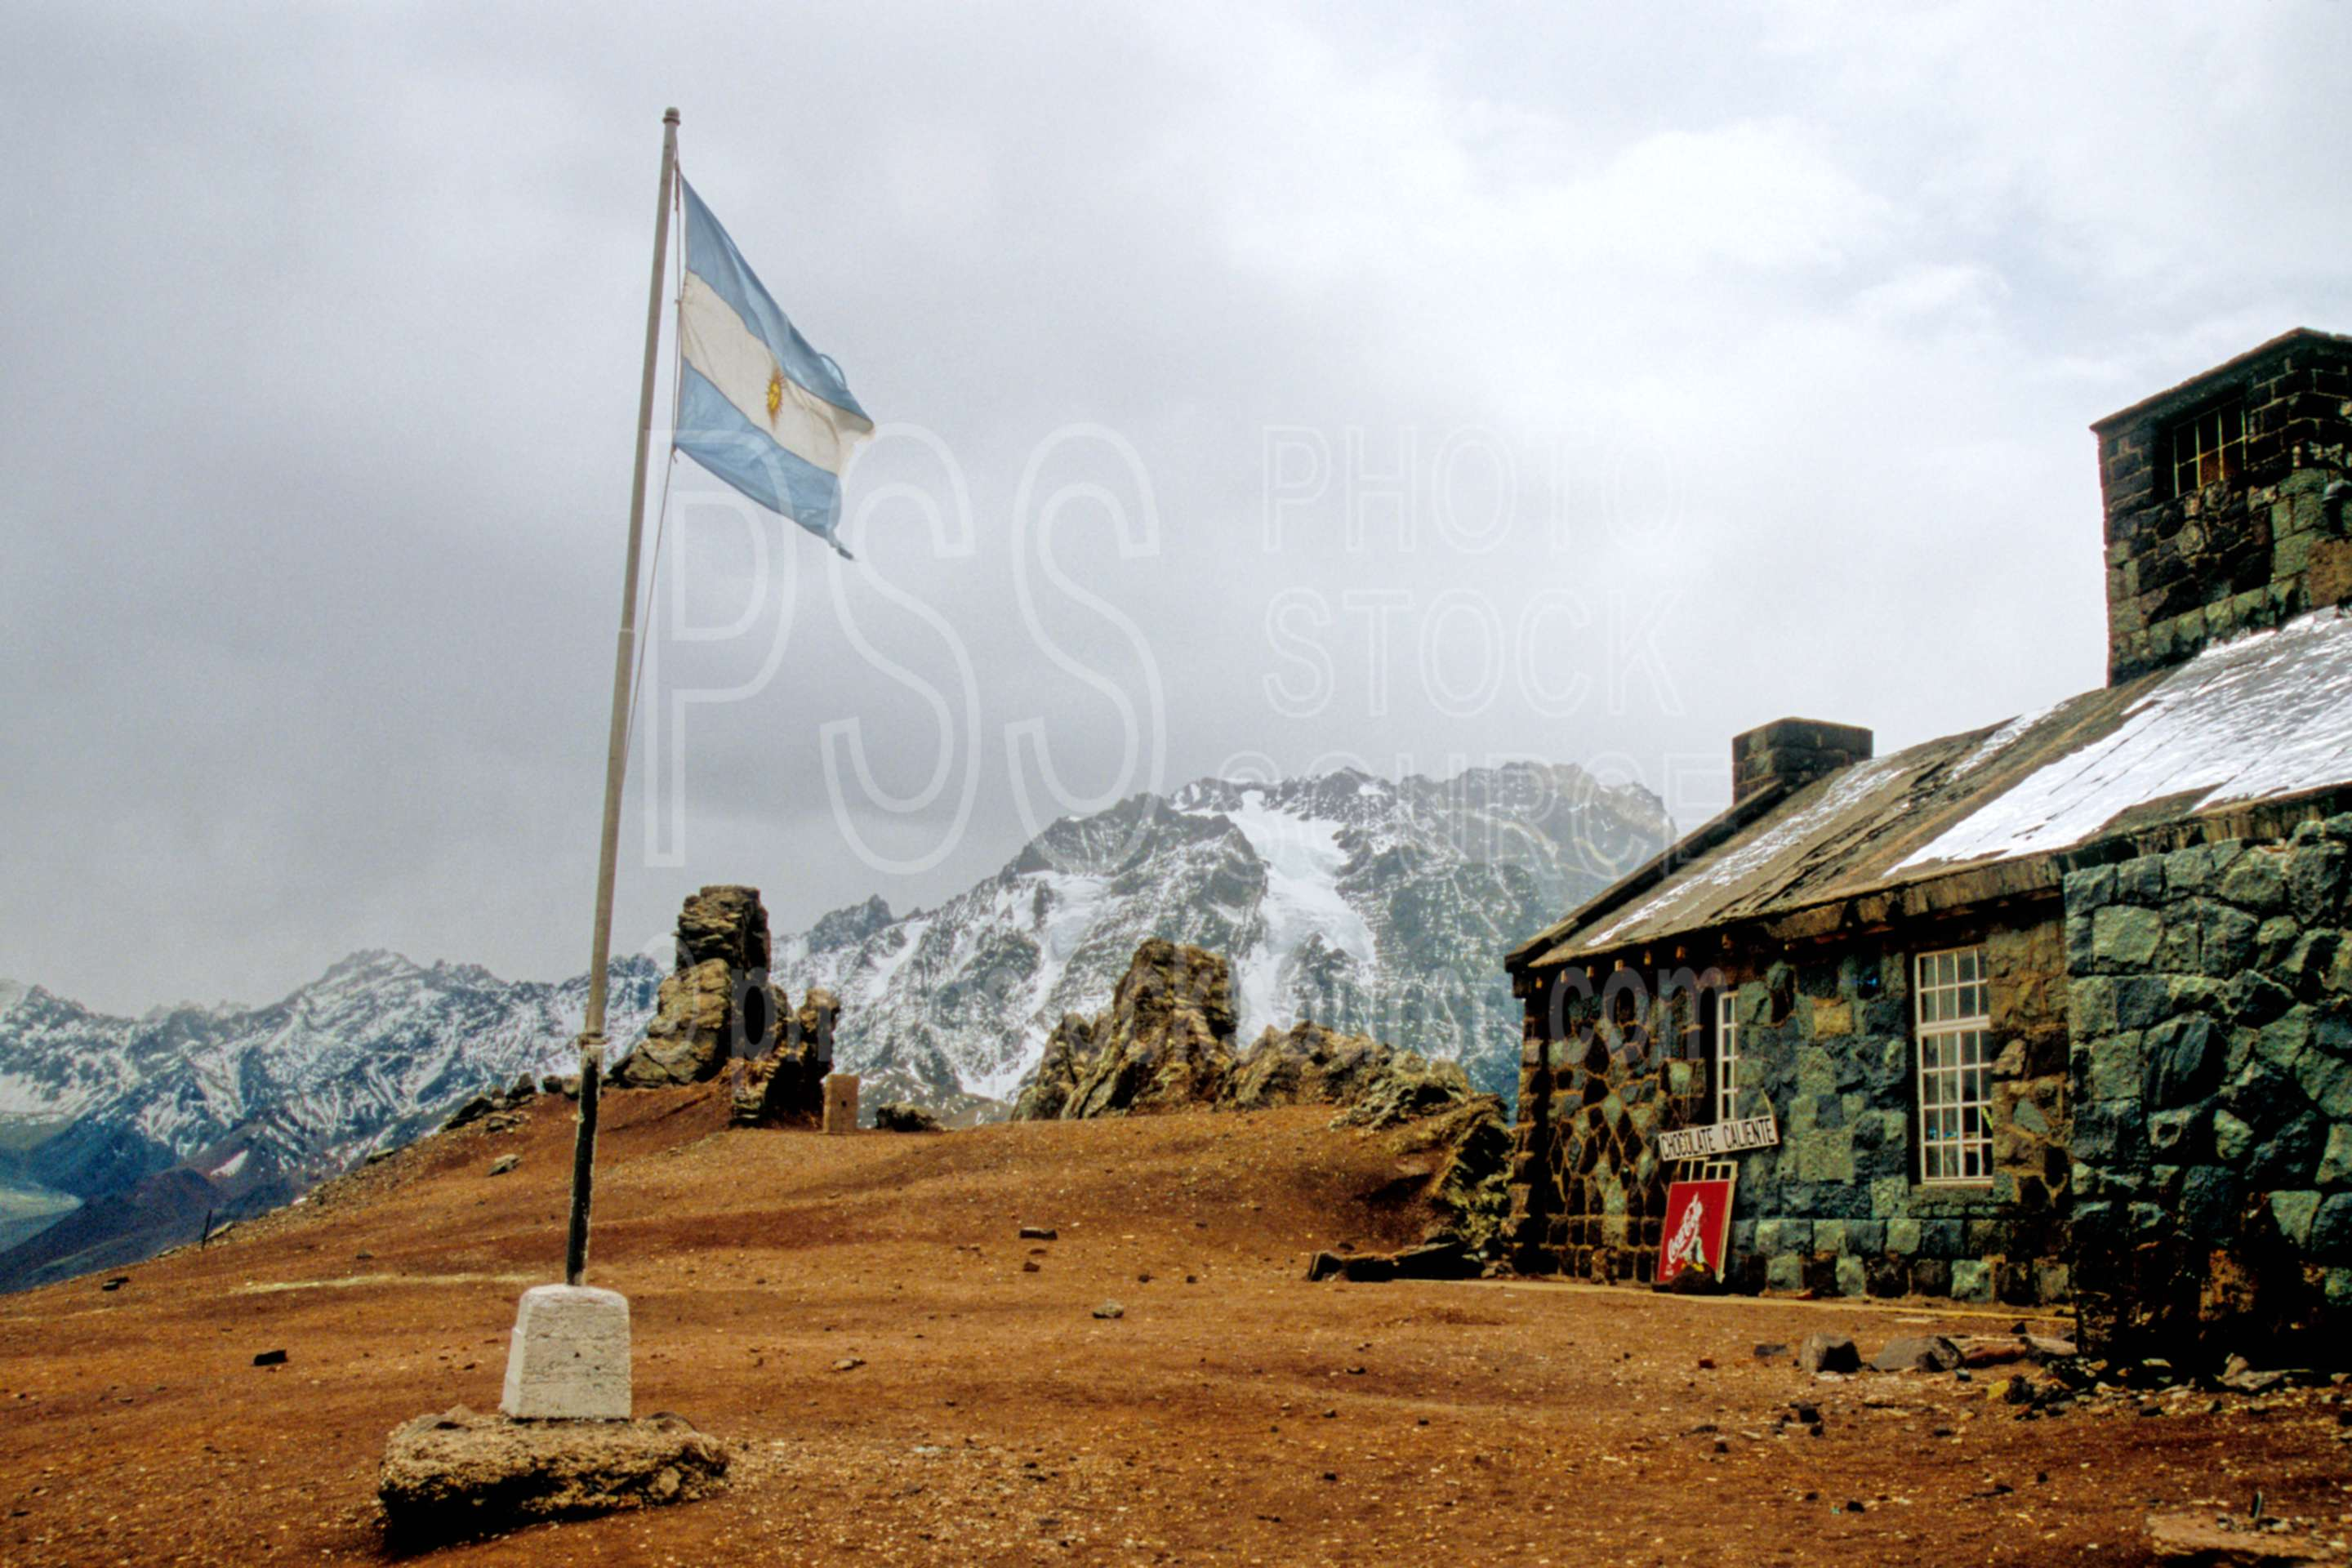 Argentine Mountain Station,pass,border,frontier,chile,flag,nature